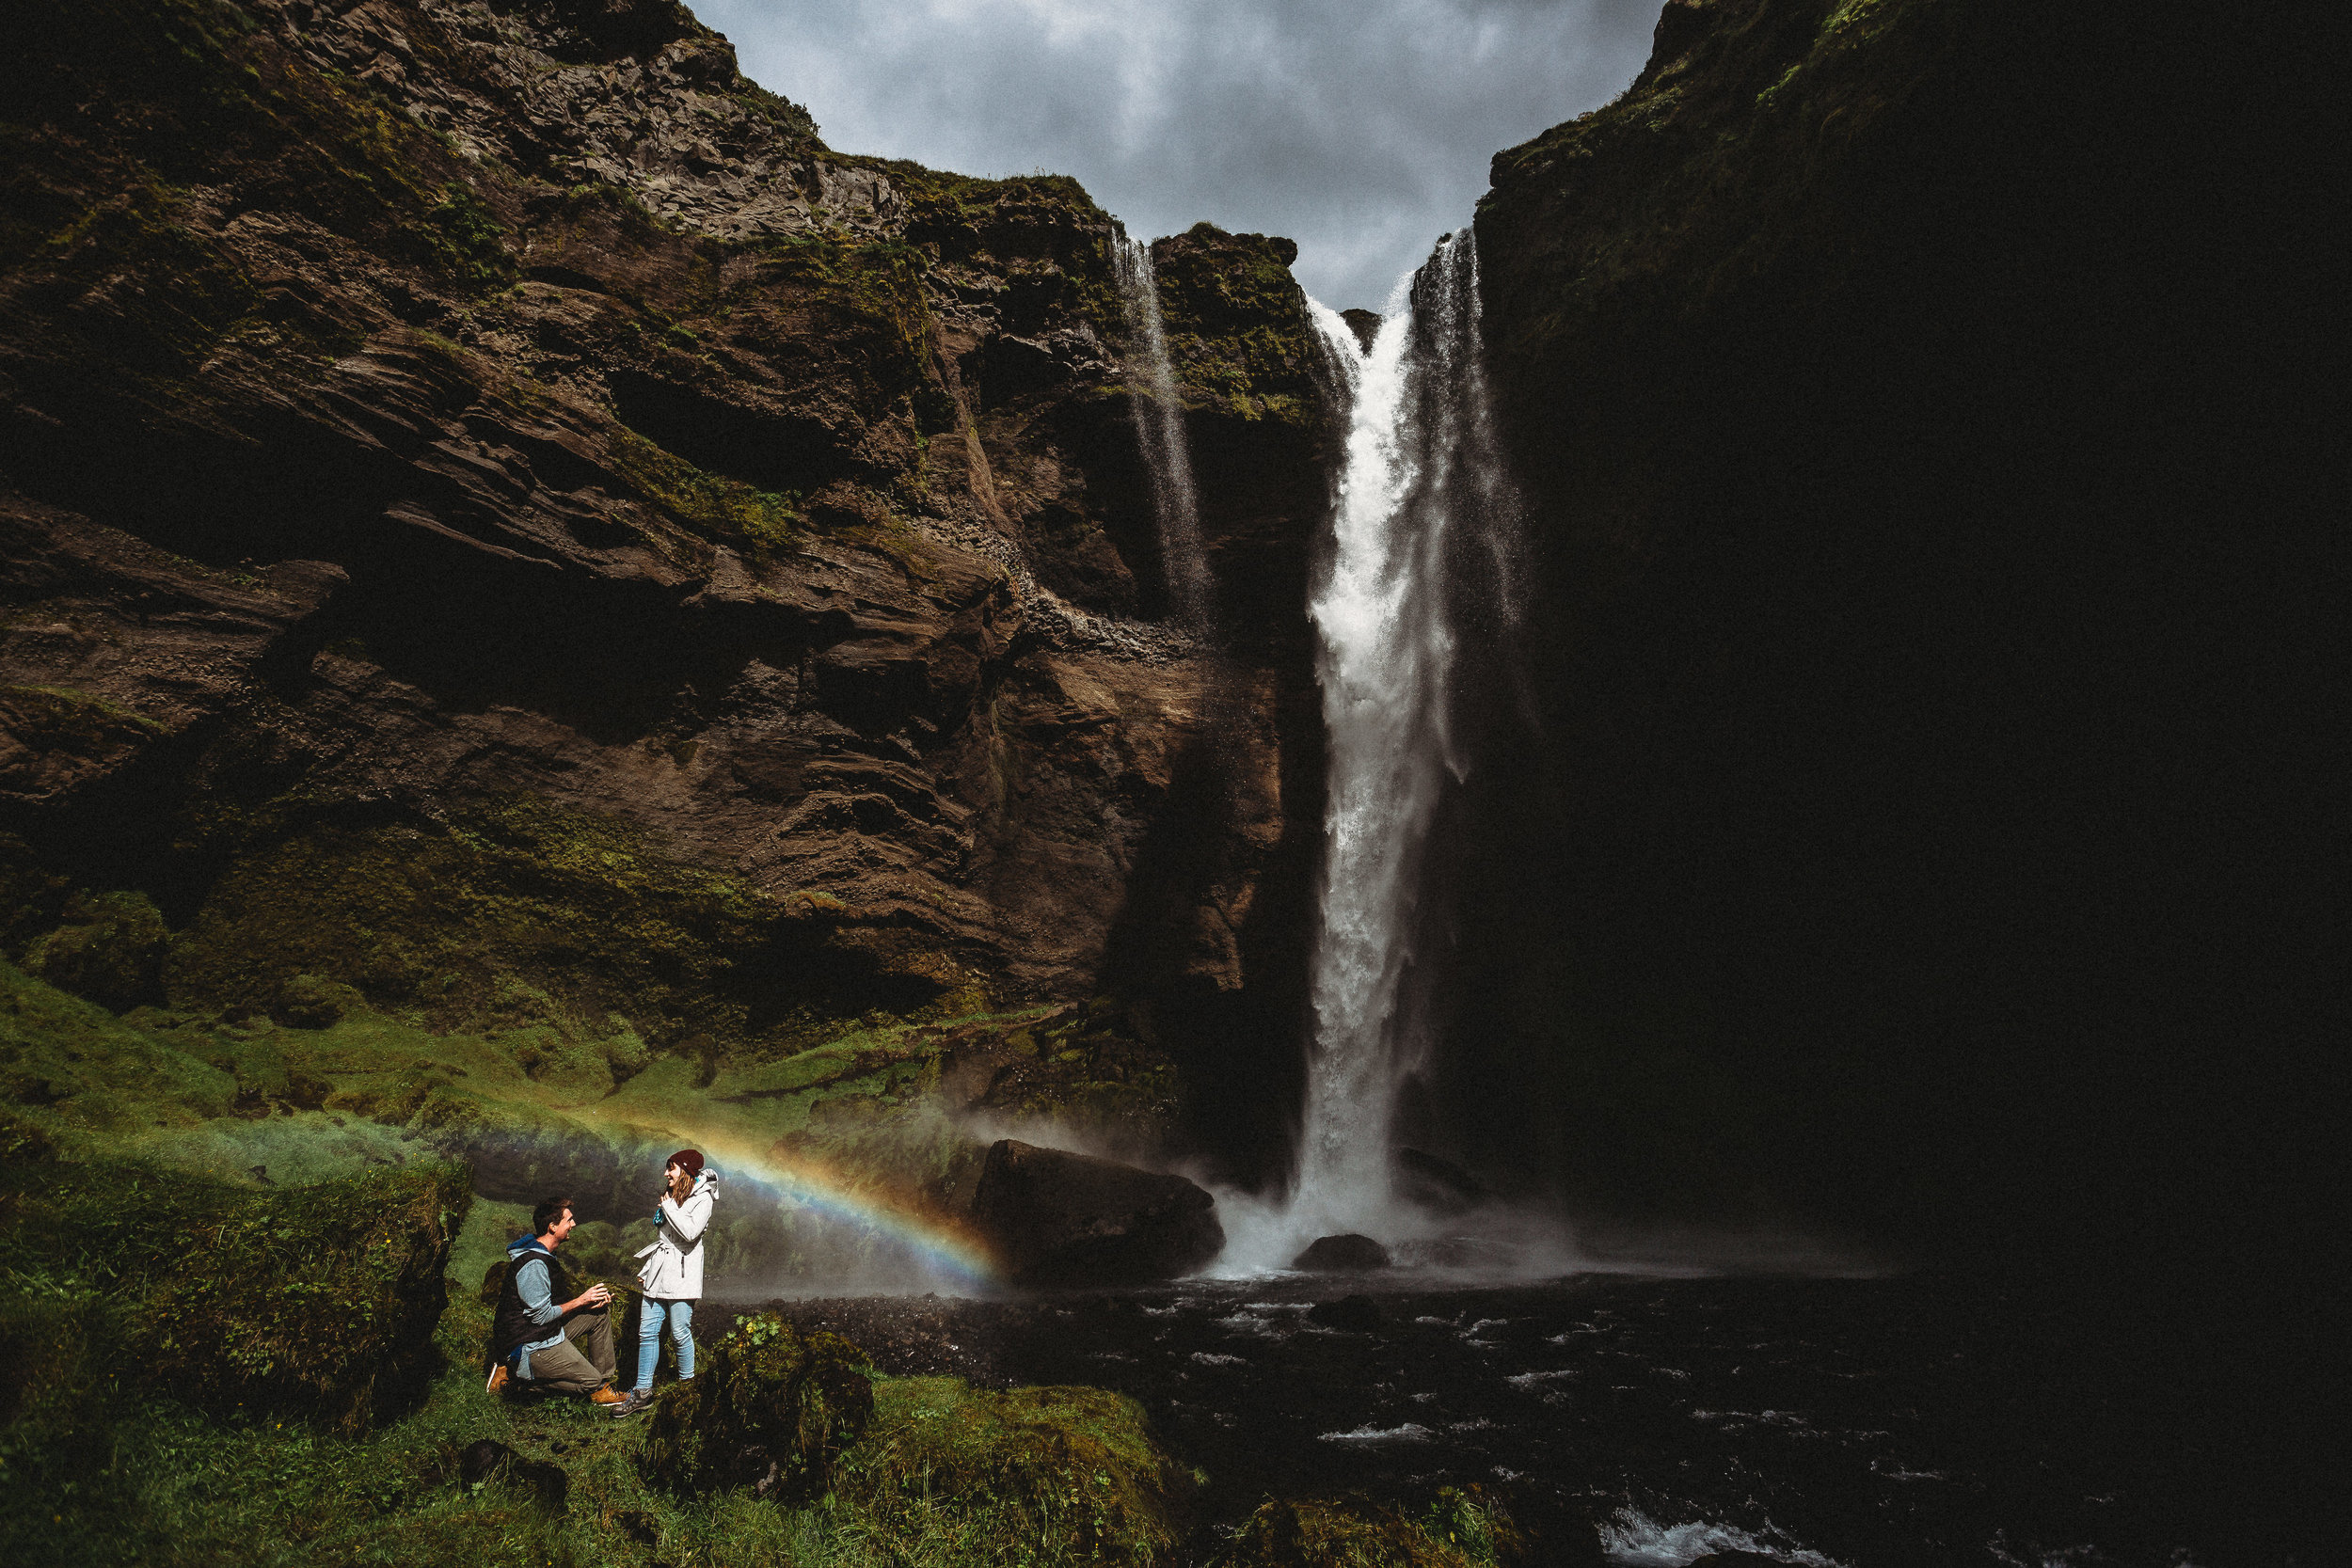 iceland elopement photographer | iceland wedding photographer | iceland wedding pictures | iceland proposal pictures